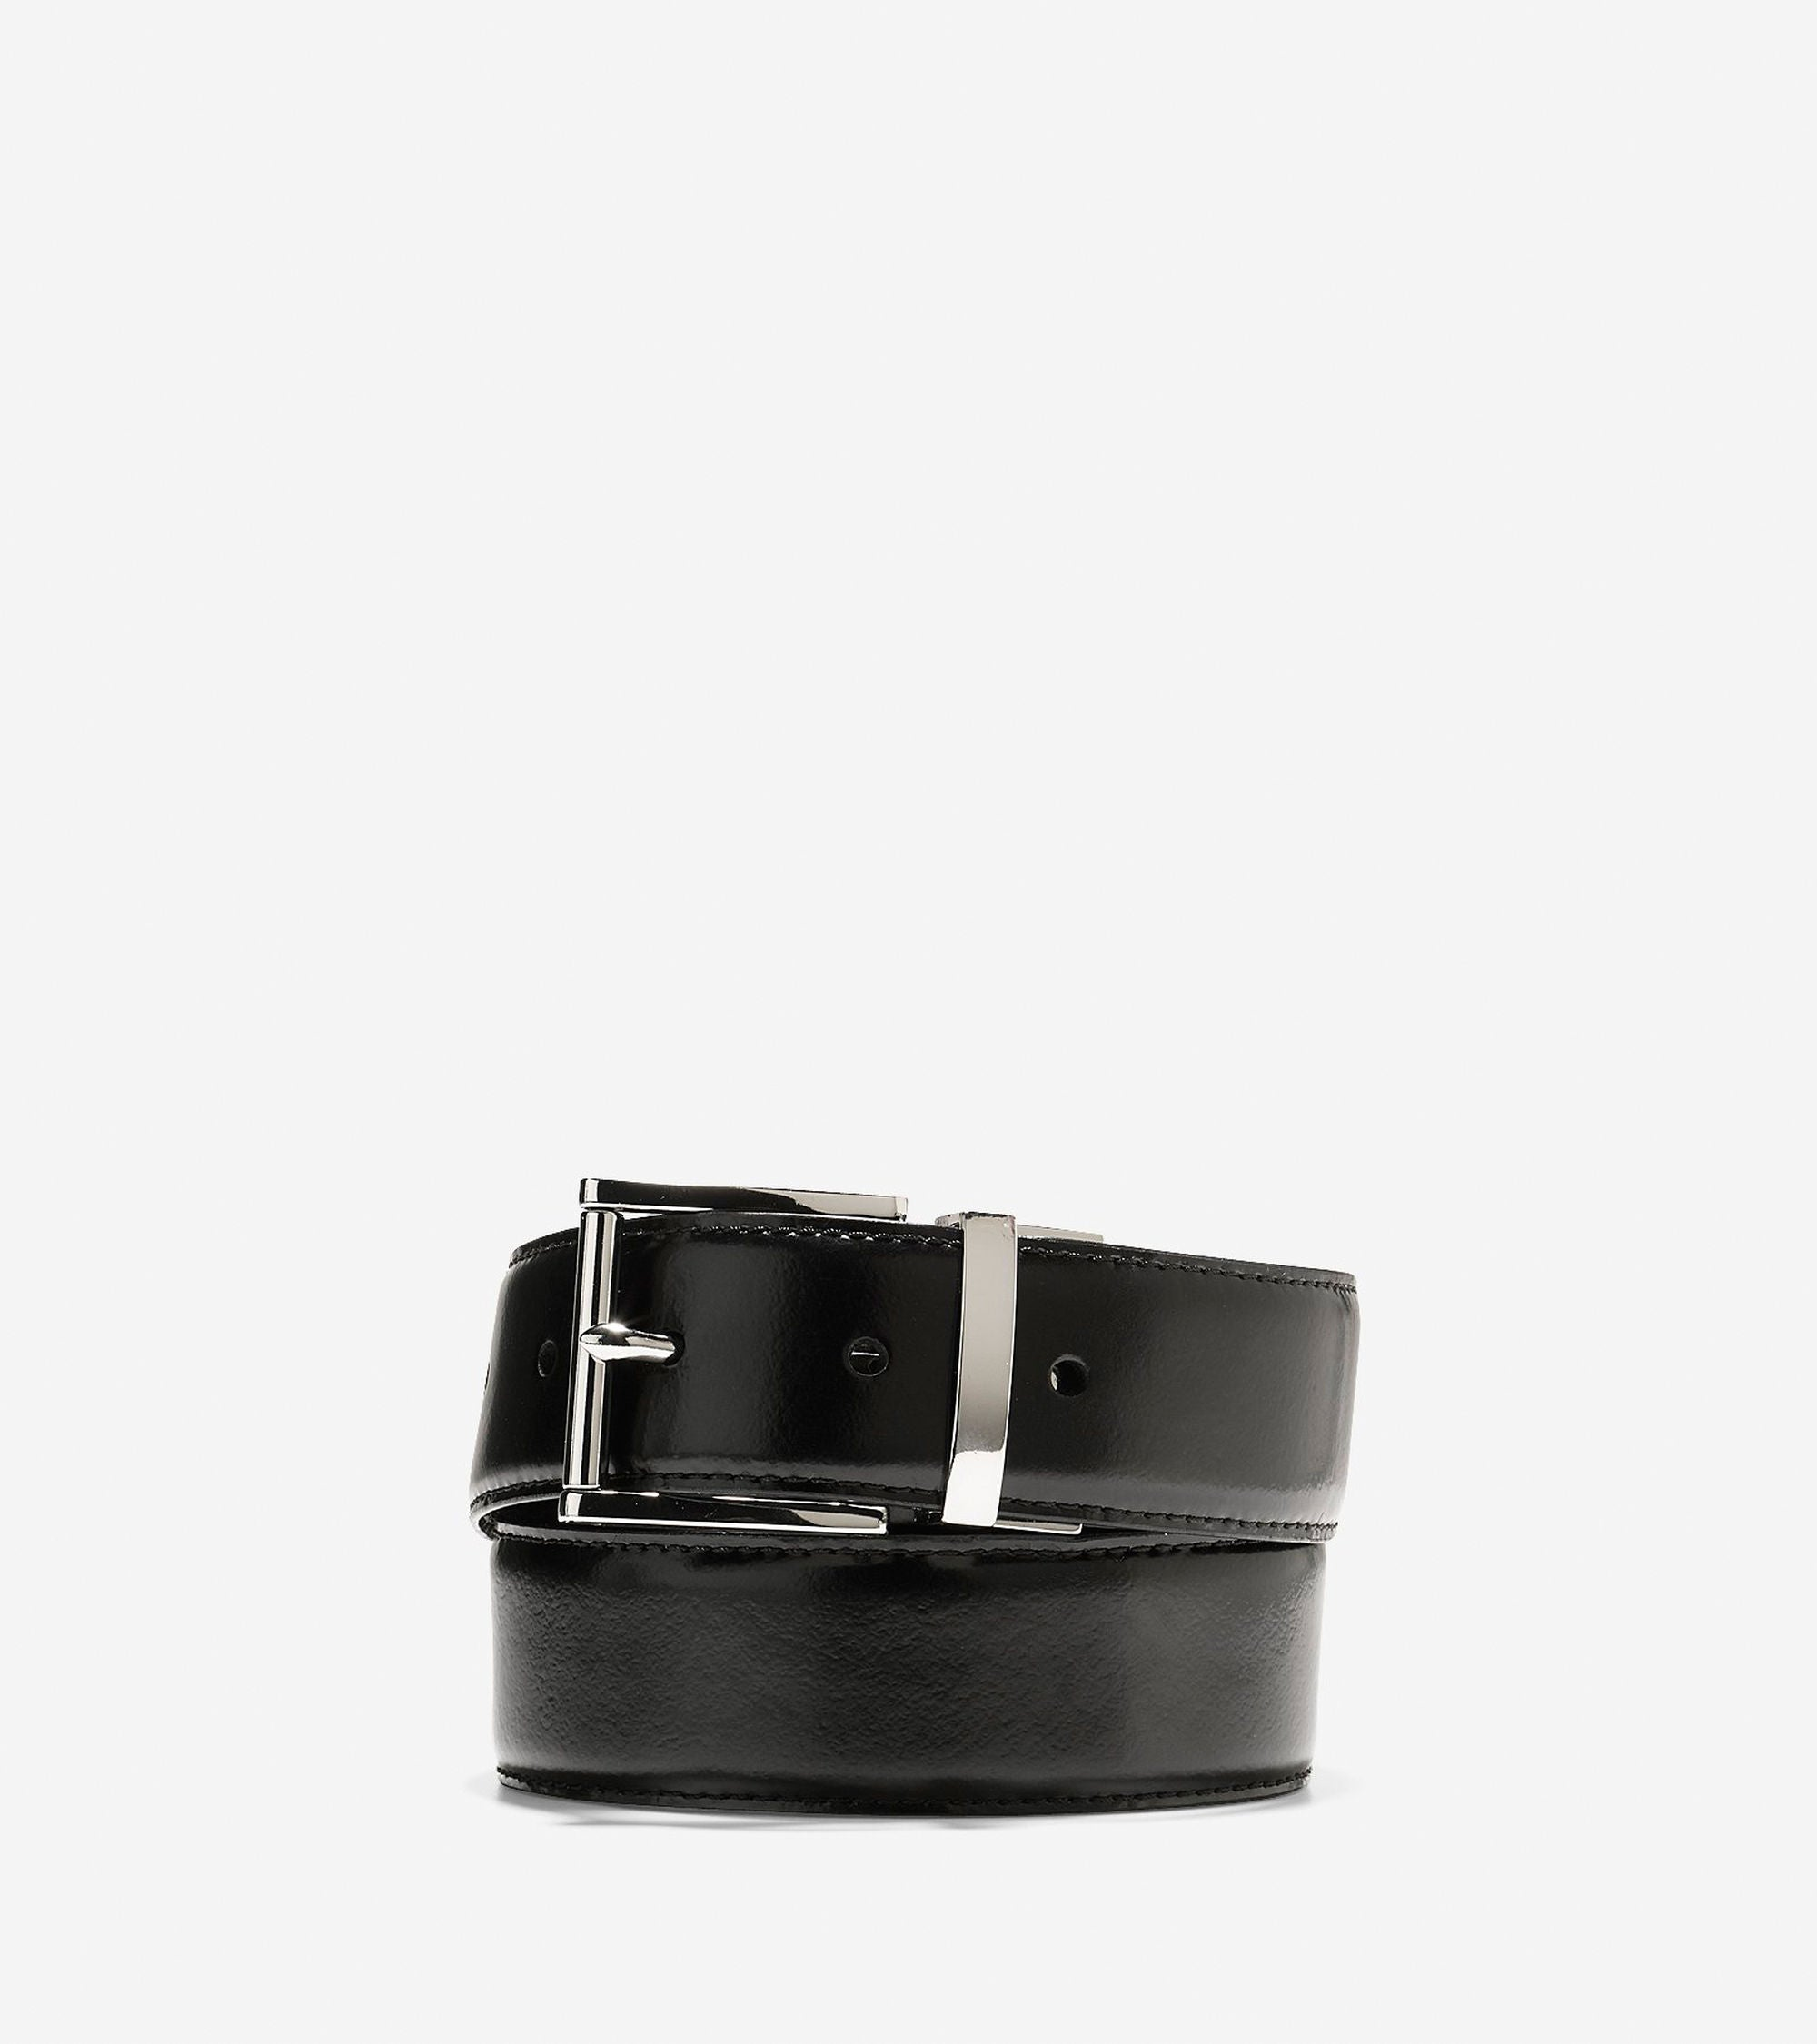 35mm Reversible Feather Edge Belt,BELT,Cole Haan, | GentRow.com